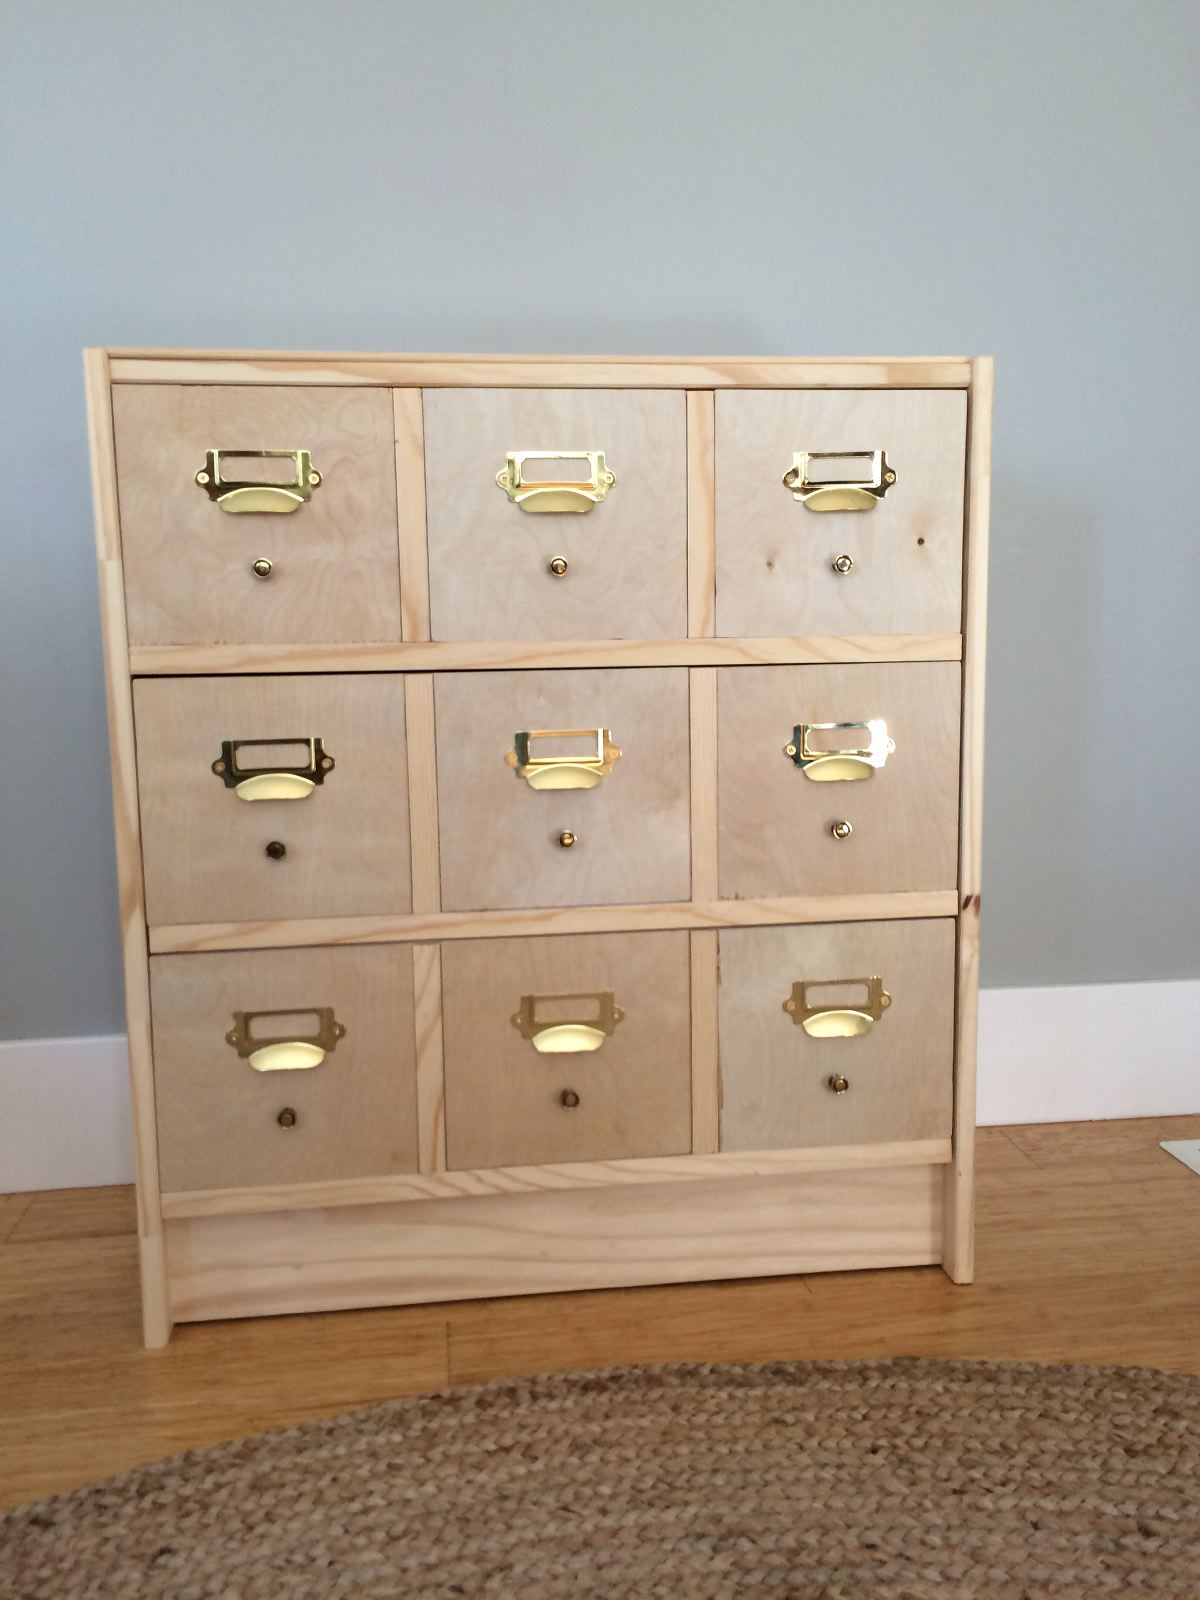 Ikea Rast Diy Card Catalog From Ikea Rast Shirley Chris Projects Blog